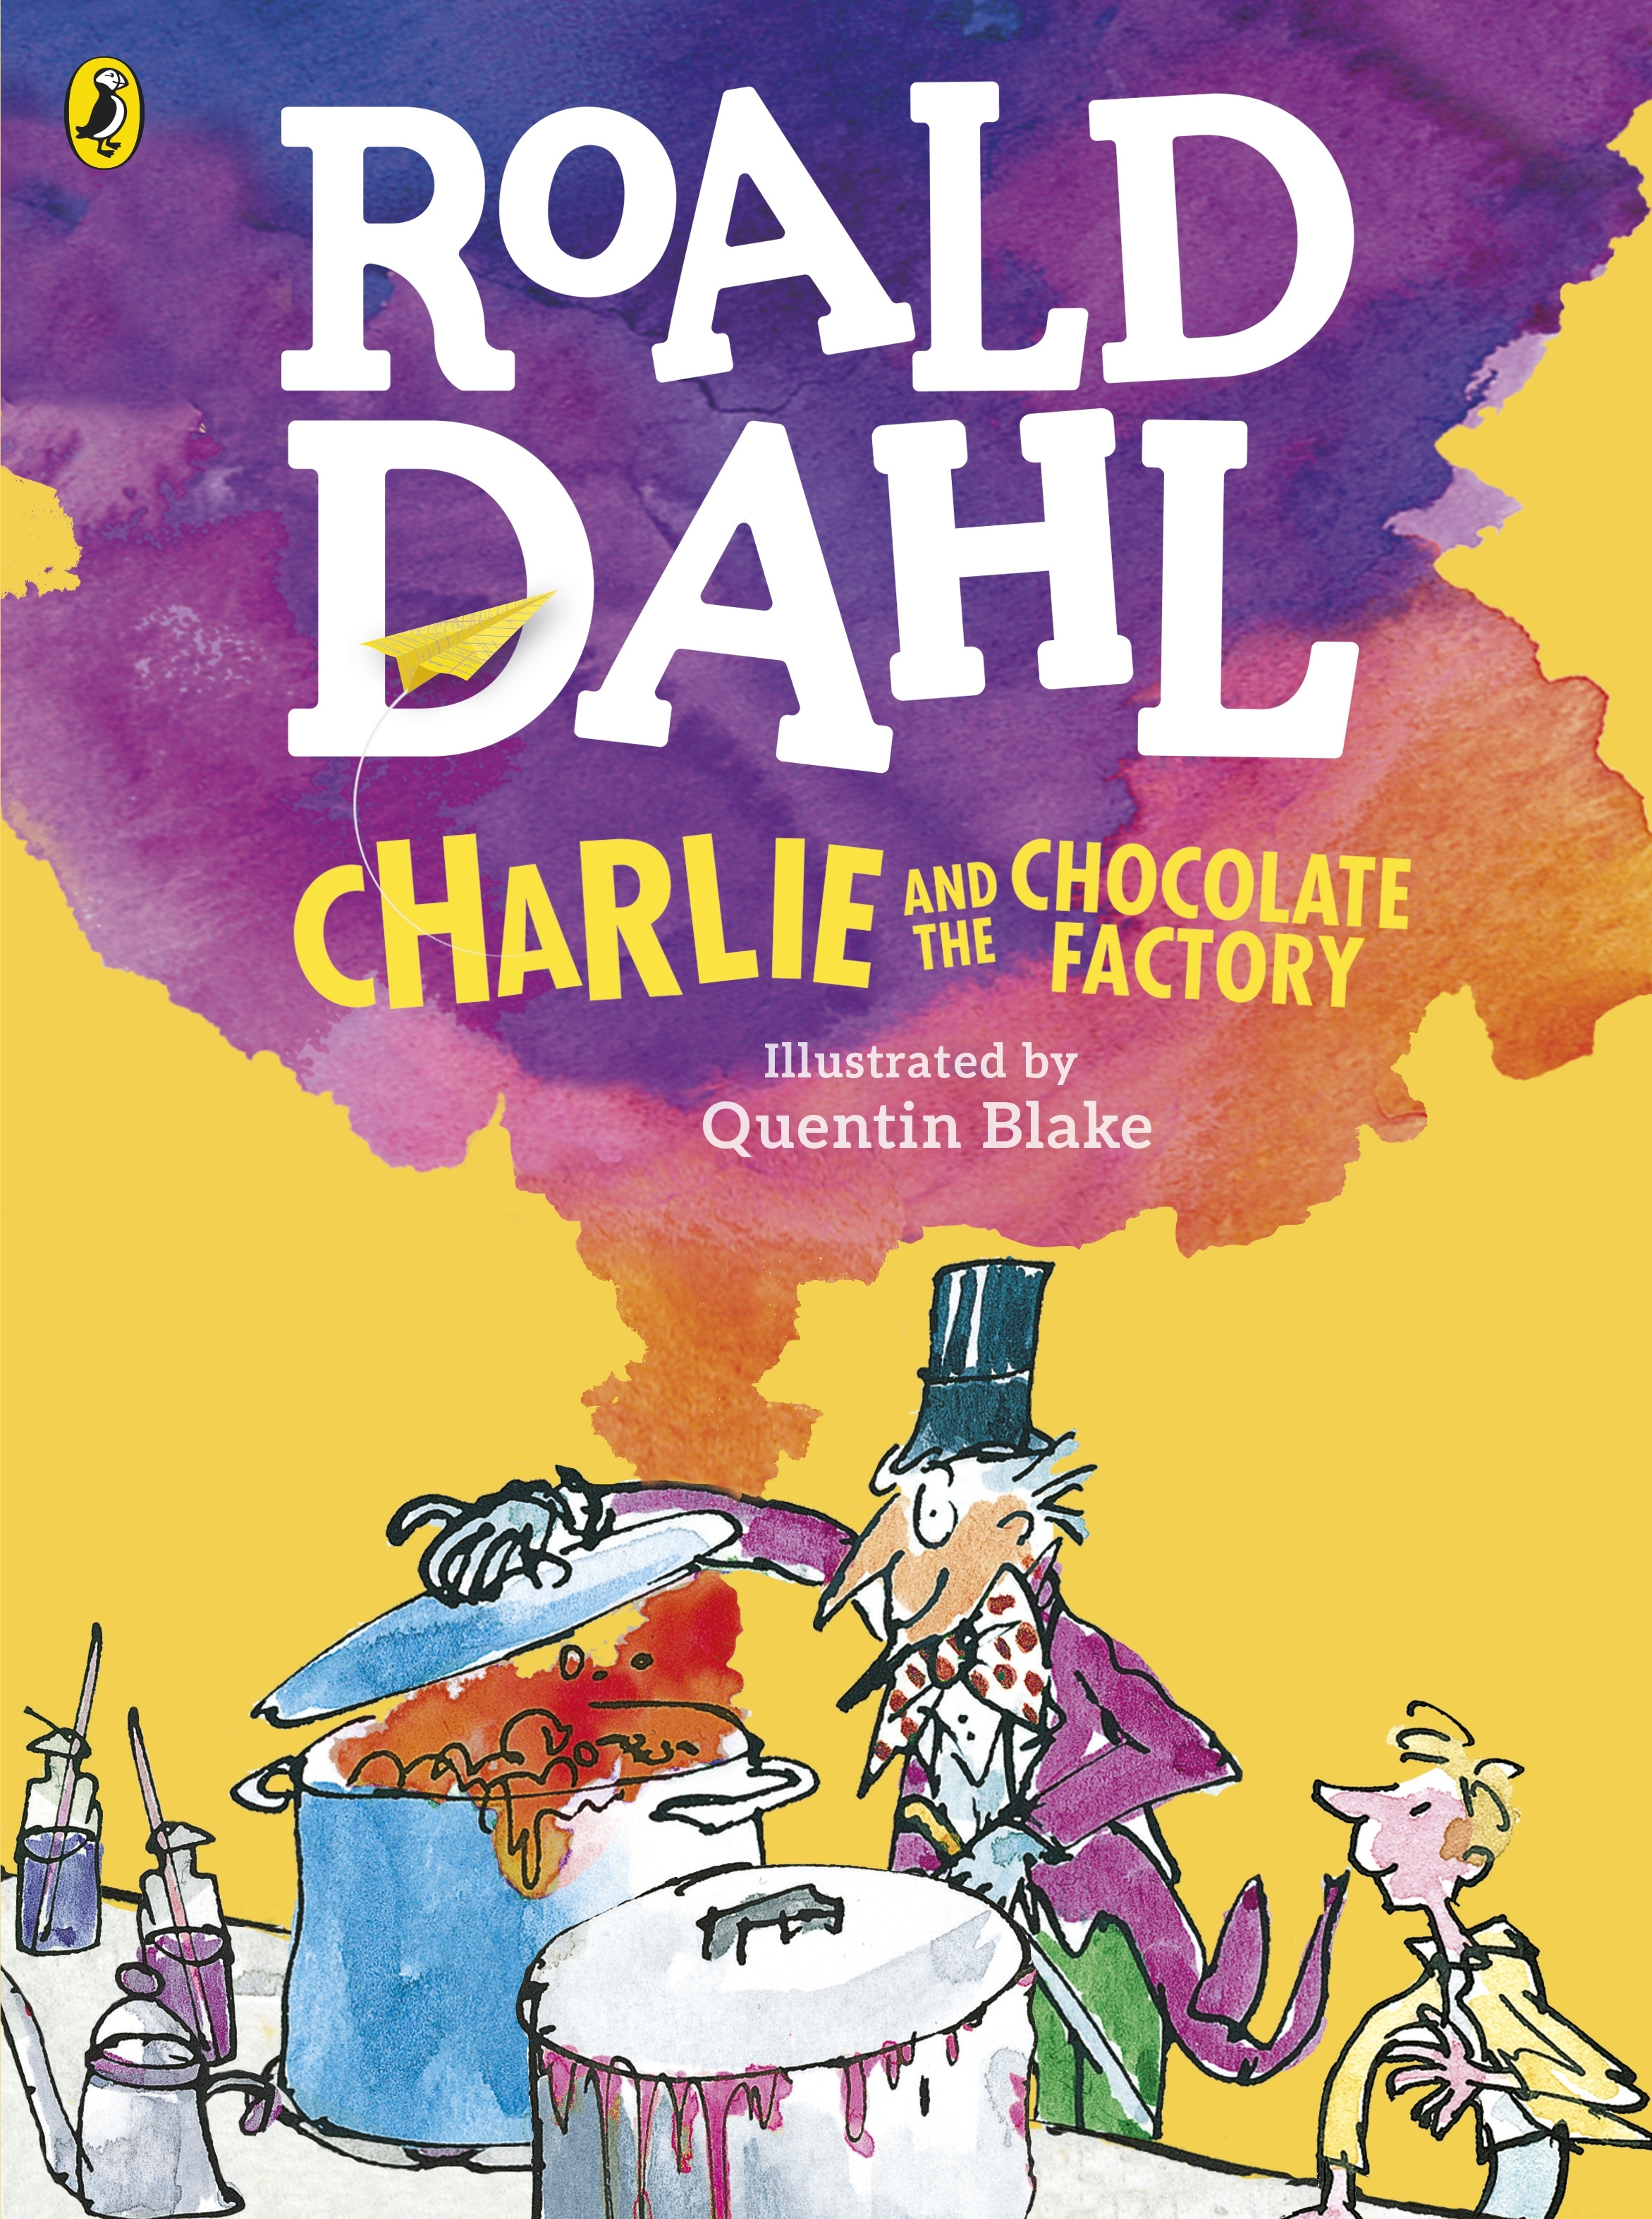 Charlie and the Chocolate Factory by Roald Dahl, ISBN: 9780141369372